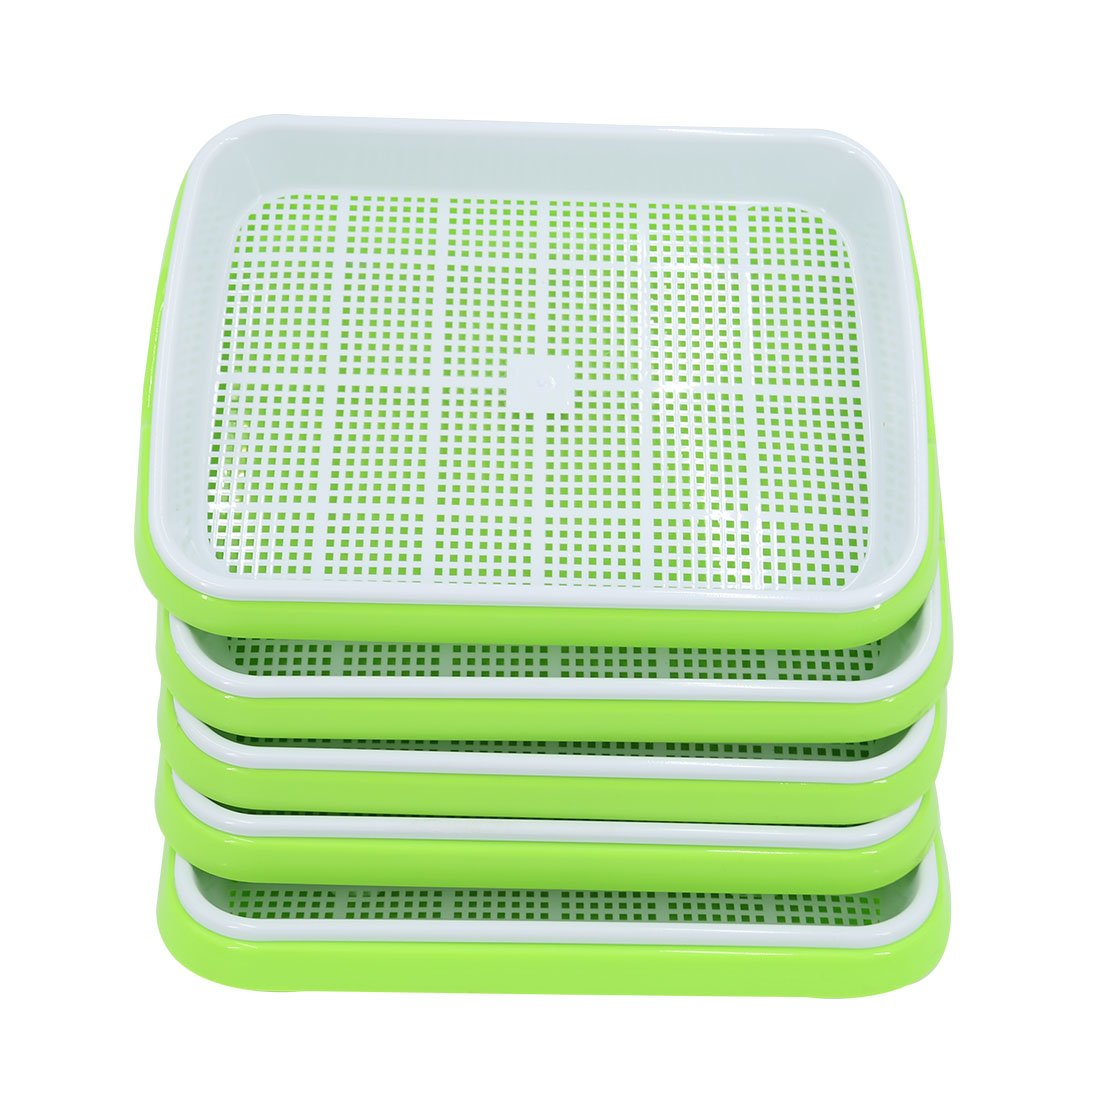 Yamix Seed Sprouter Tray, 5 Set Two-Tiered Seed Sprouter Tray Kitchen Crop Sprouter Plant Germination Tray Hydroponics Basket (Green + White)